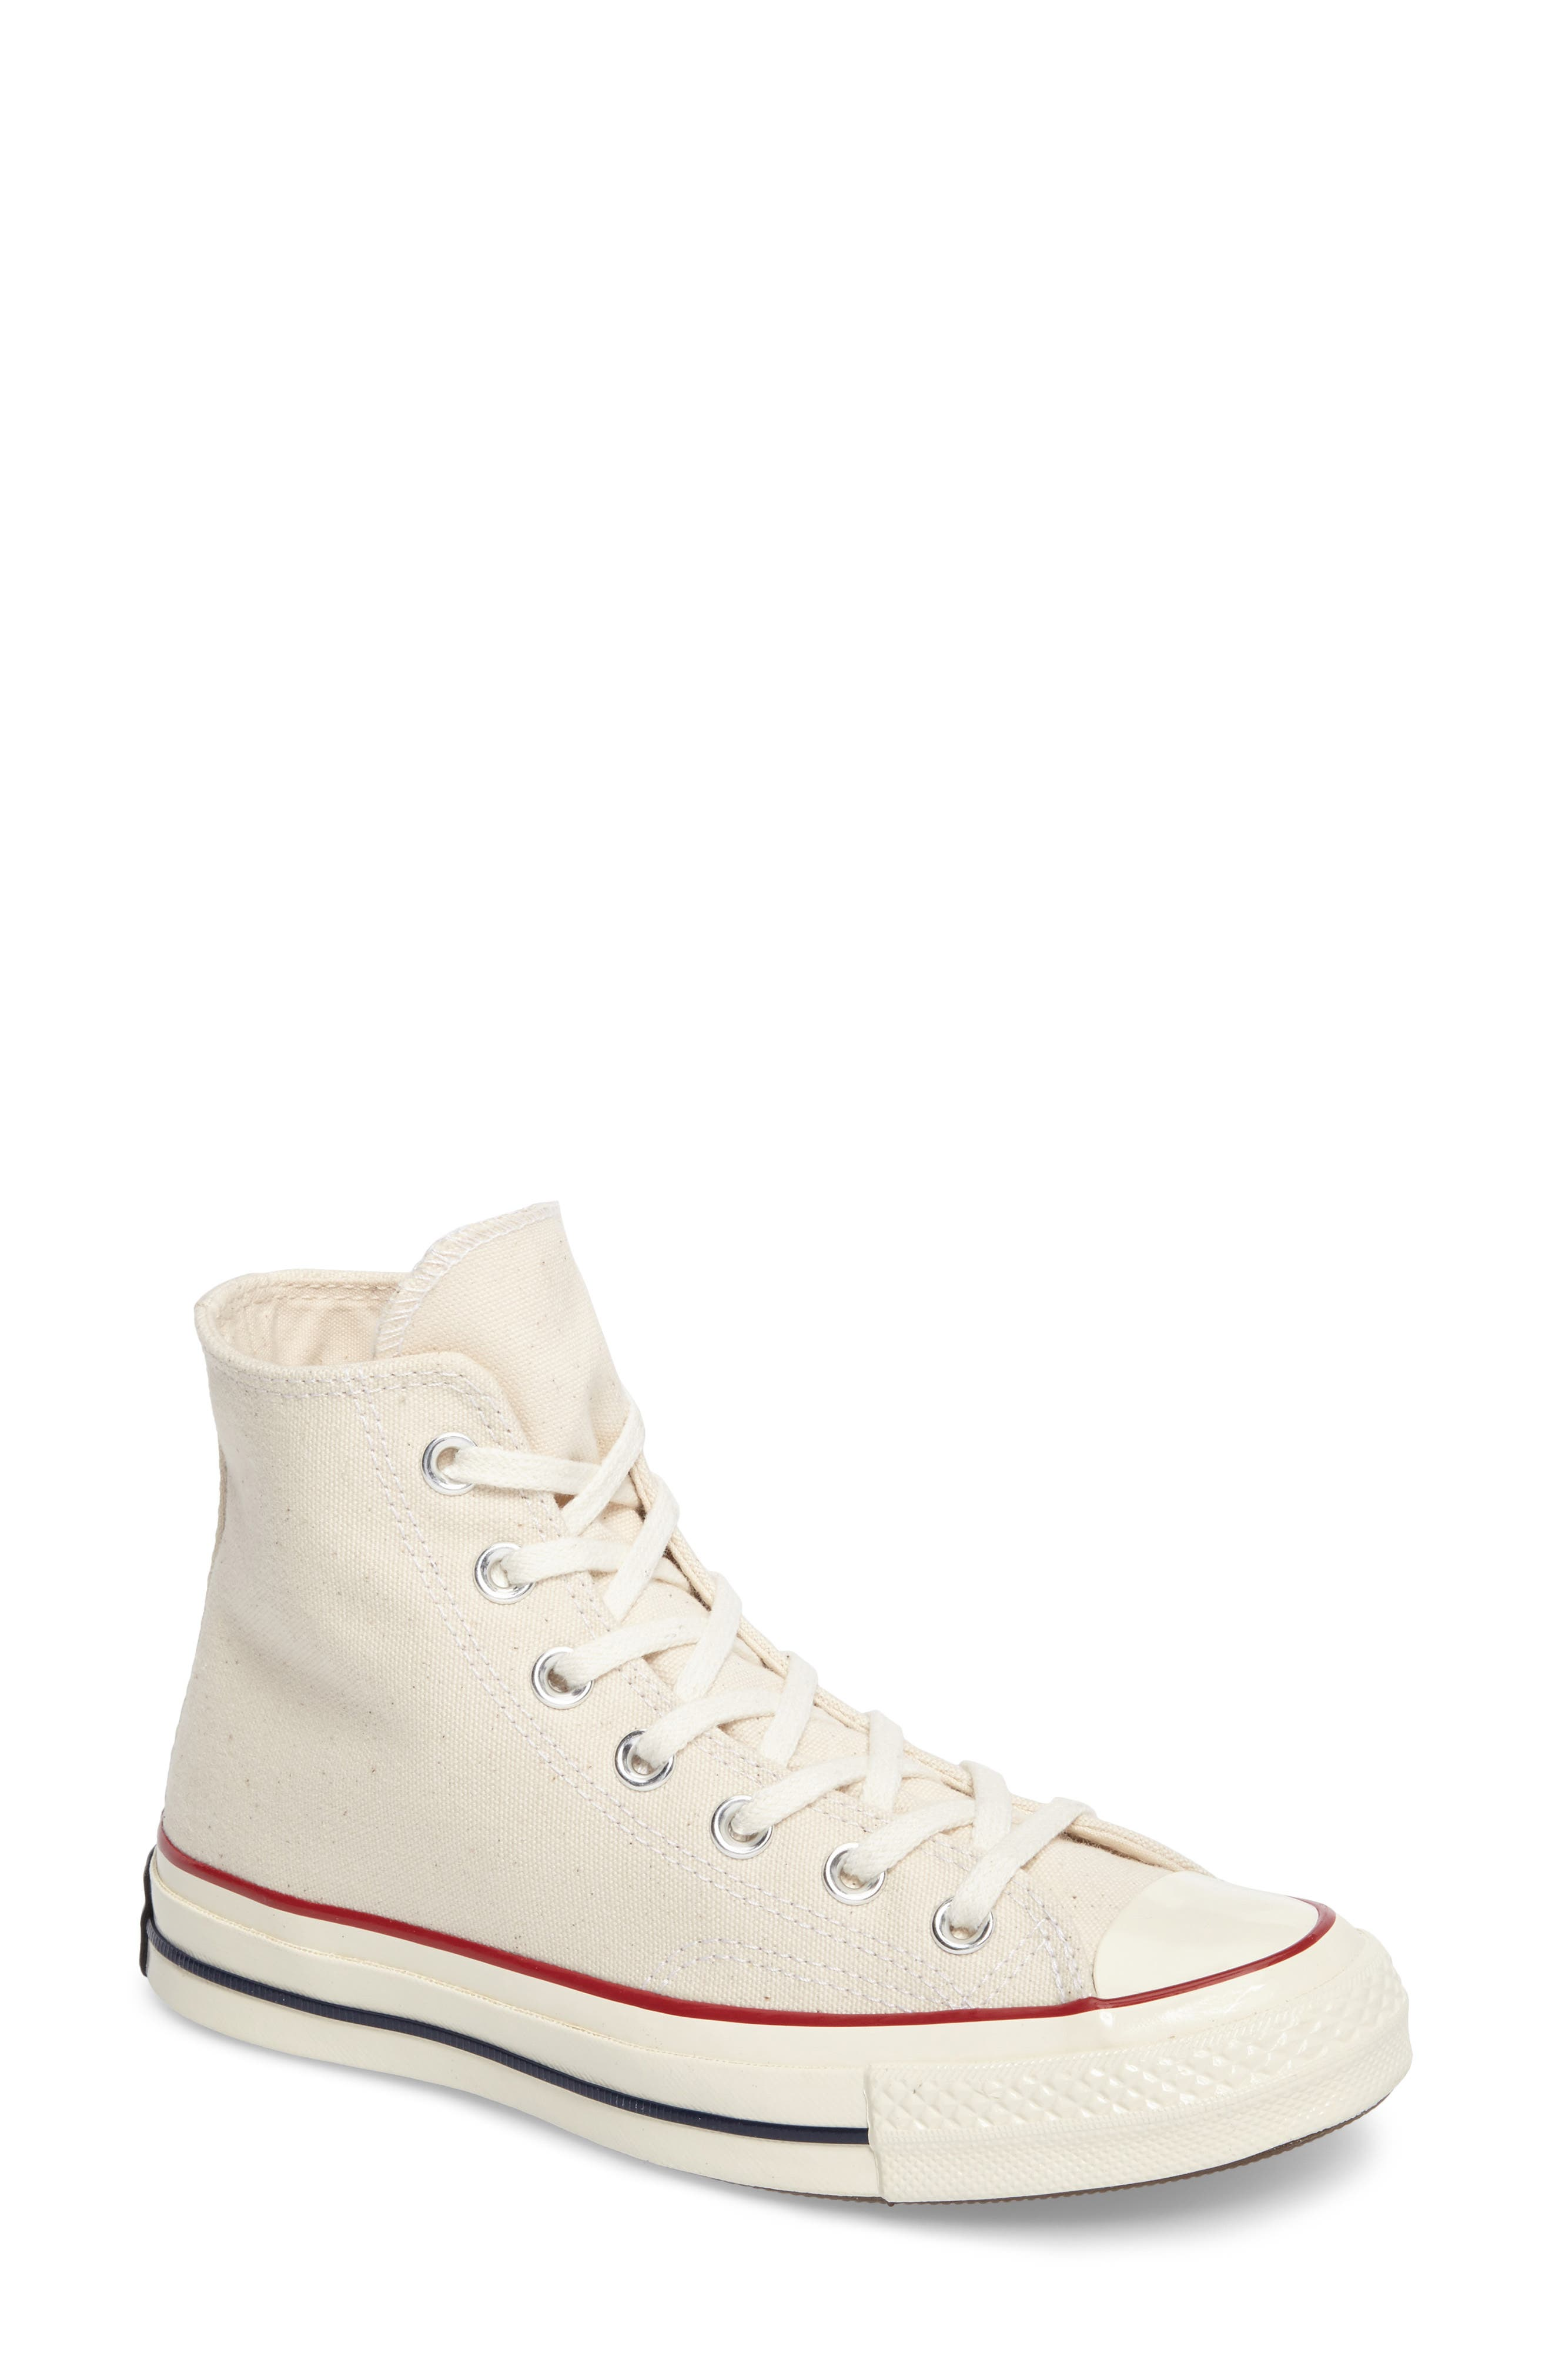 Chuck Taylor<sup>®</sup> All Star<sup>®</sup> '70 High Top Sneaker,                             Main thumbnail 1, color,                             PARCHMENT